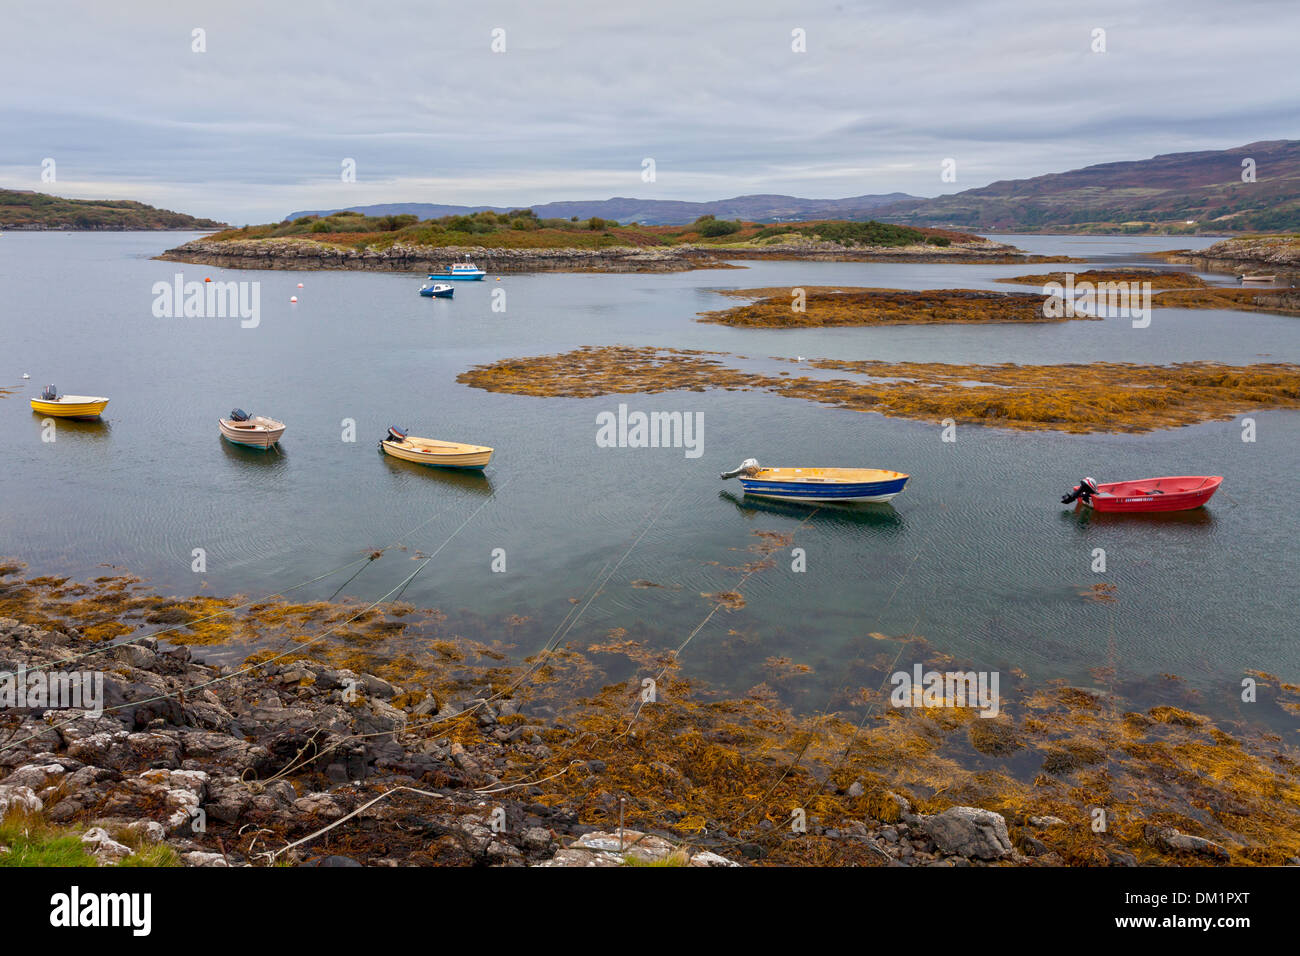 Small boats with outboard motors, moored near the Ulva ferry landing on Mull, Inner Hebrides, Scotland. - Stock Image